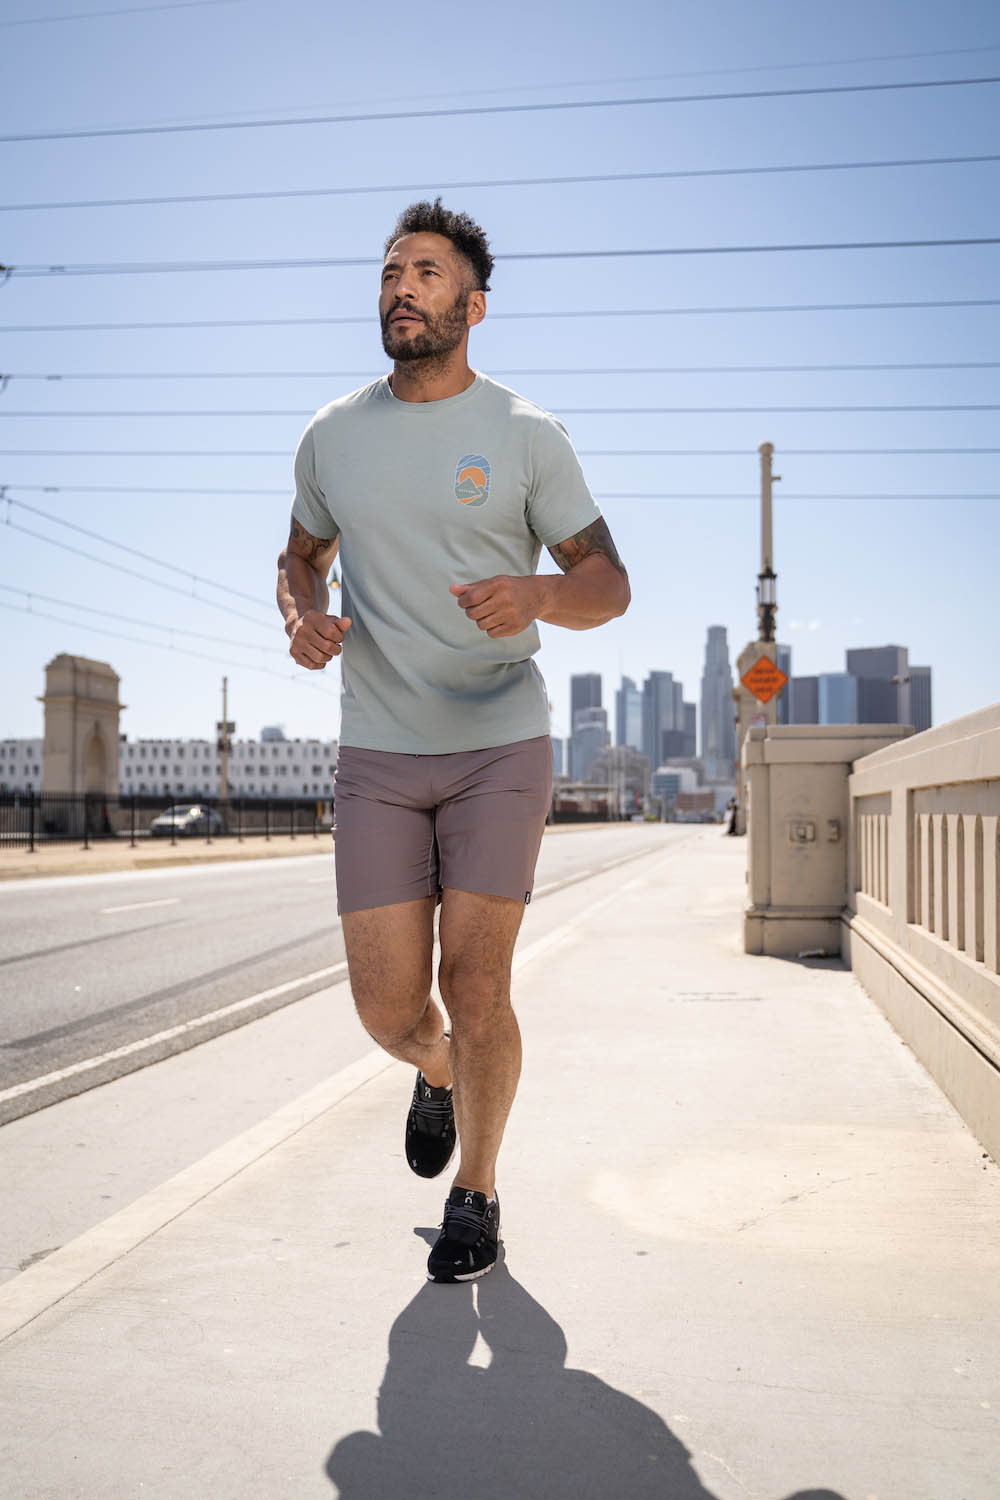 Lifestyle-On-Location-Model-Onmodel-Damion-Lloyd-Photography-Commercial-Product-Apparel-Clothing-Los-Angeles-Orange-County-male-man-GLYDER-sportswear-outdoor-city-running-active-bridge-downtown